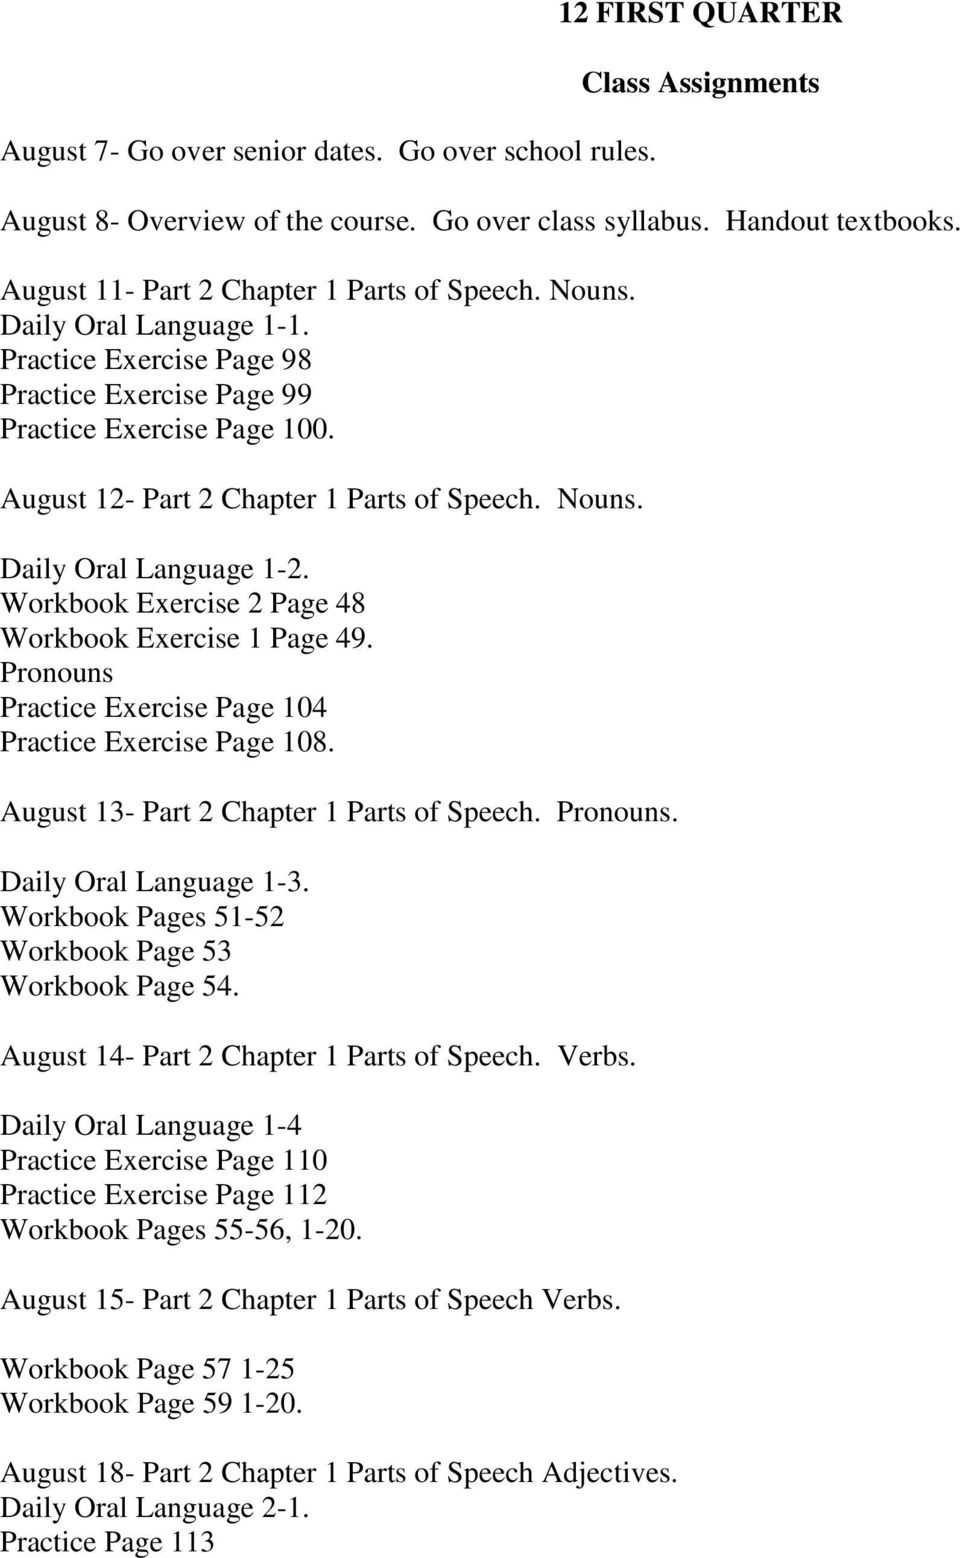 August 12- Part 2 Chapter 1 Parts of Speech. Nouns. Daily Oral Language 1-2. Workbook Exercise 2 Page 48 Workbook Exercise 1 Page 49. Pronouns Practice Exercise Page 104 Practice Exercise Page 108.